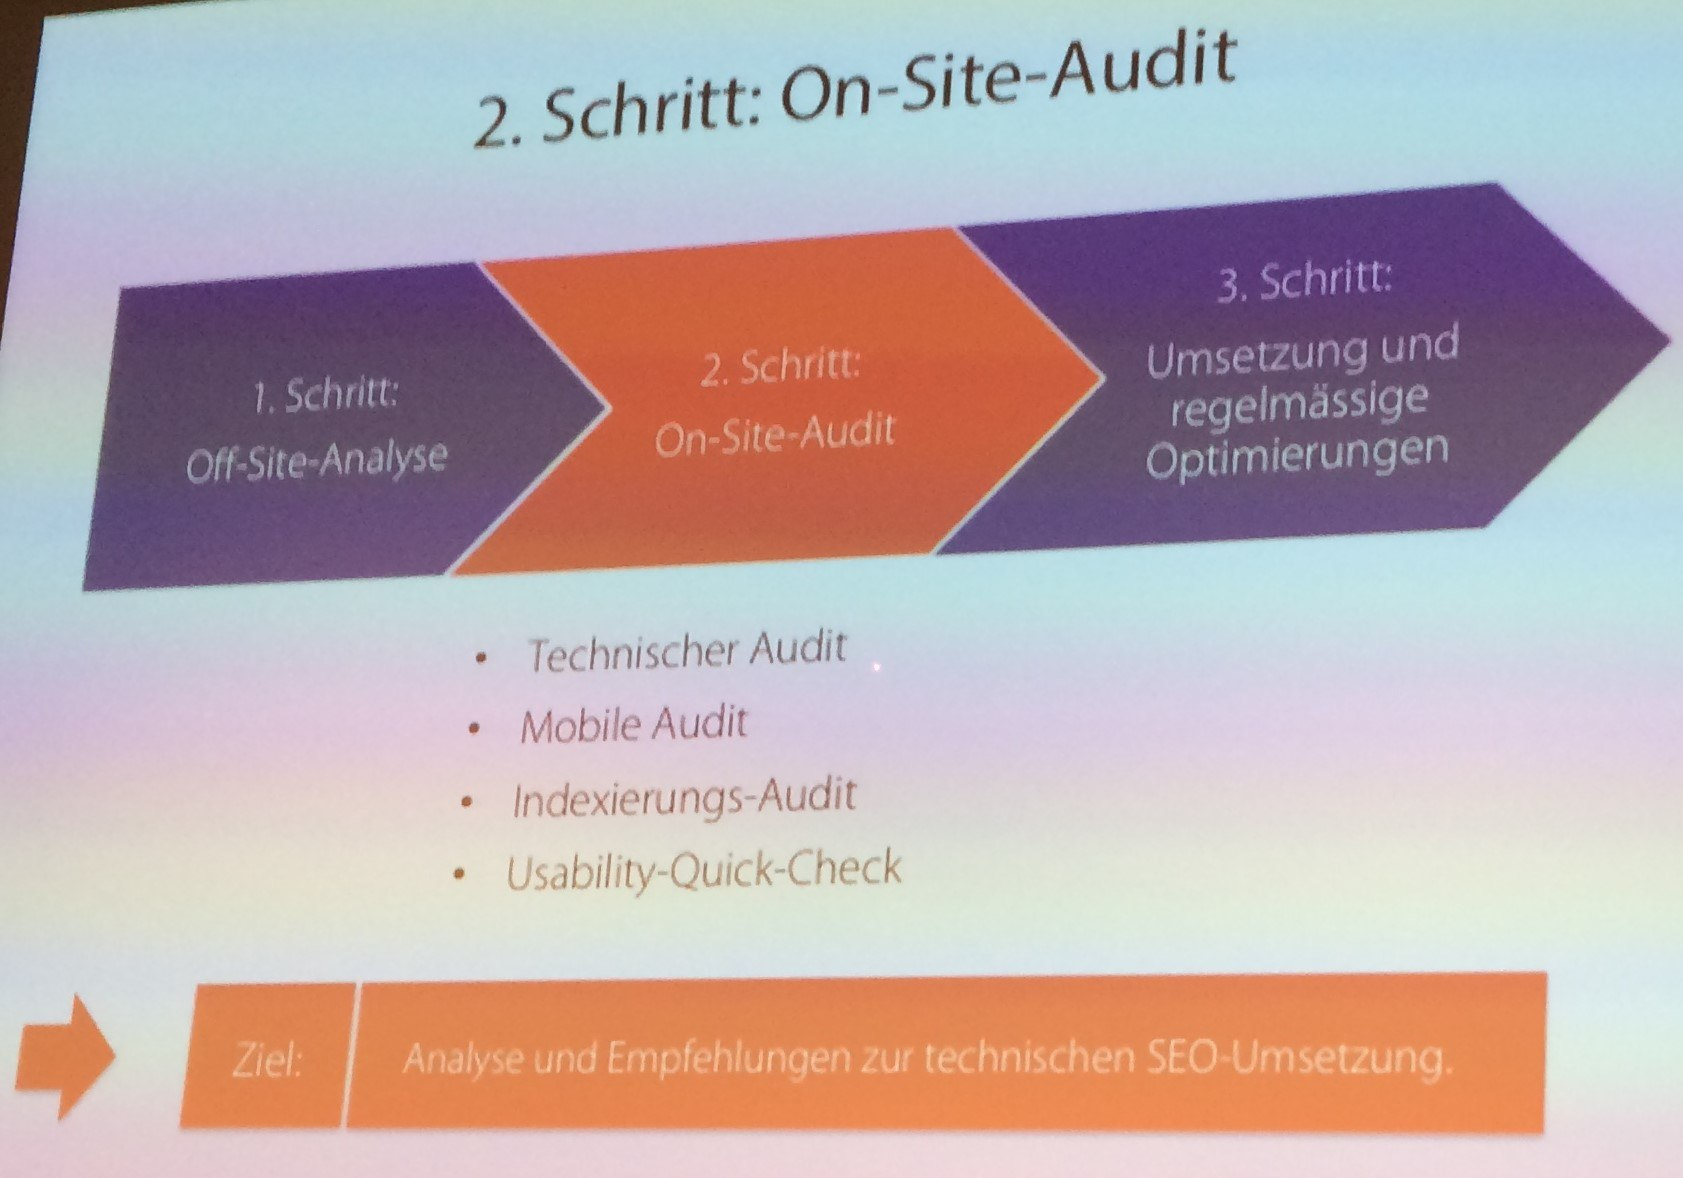 SEO Analyse: On-Site-Audit